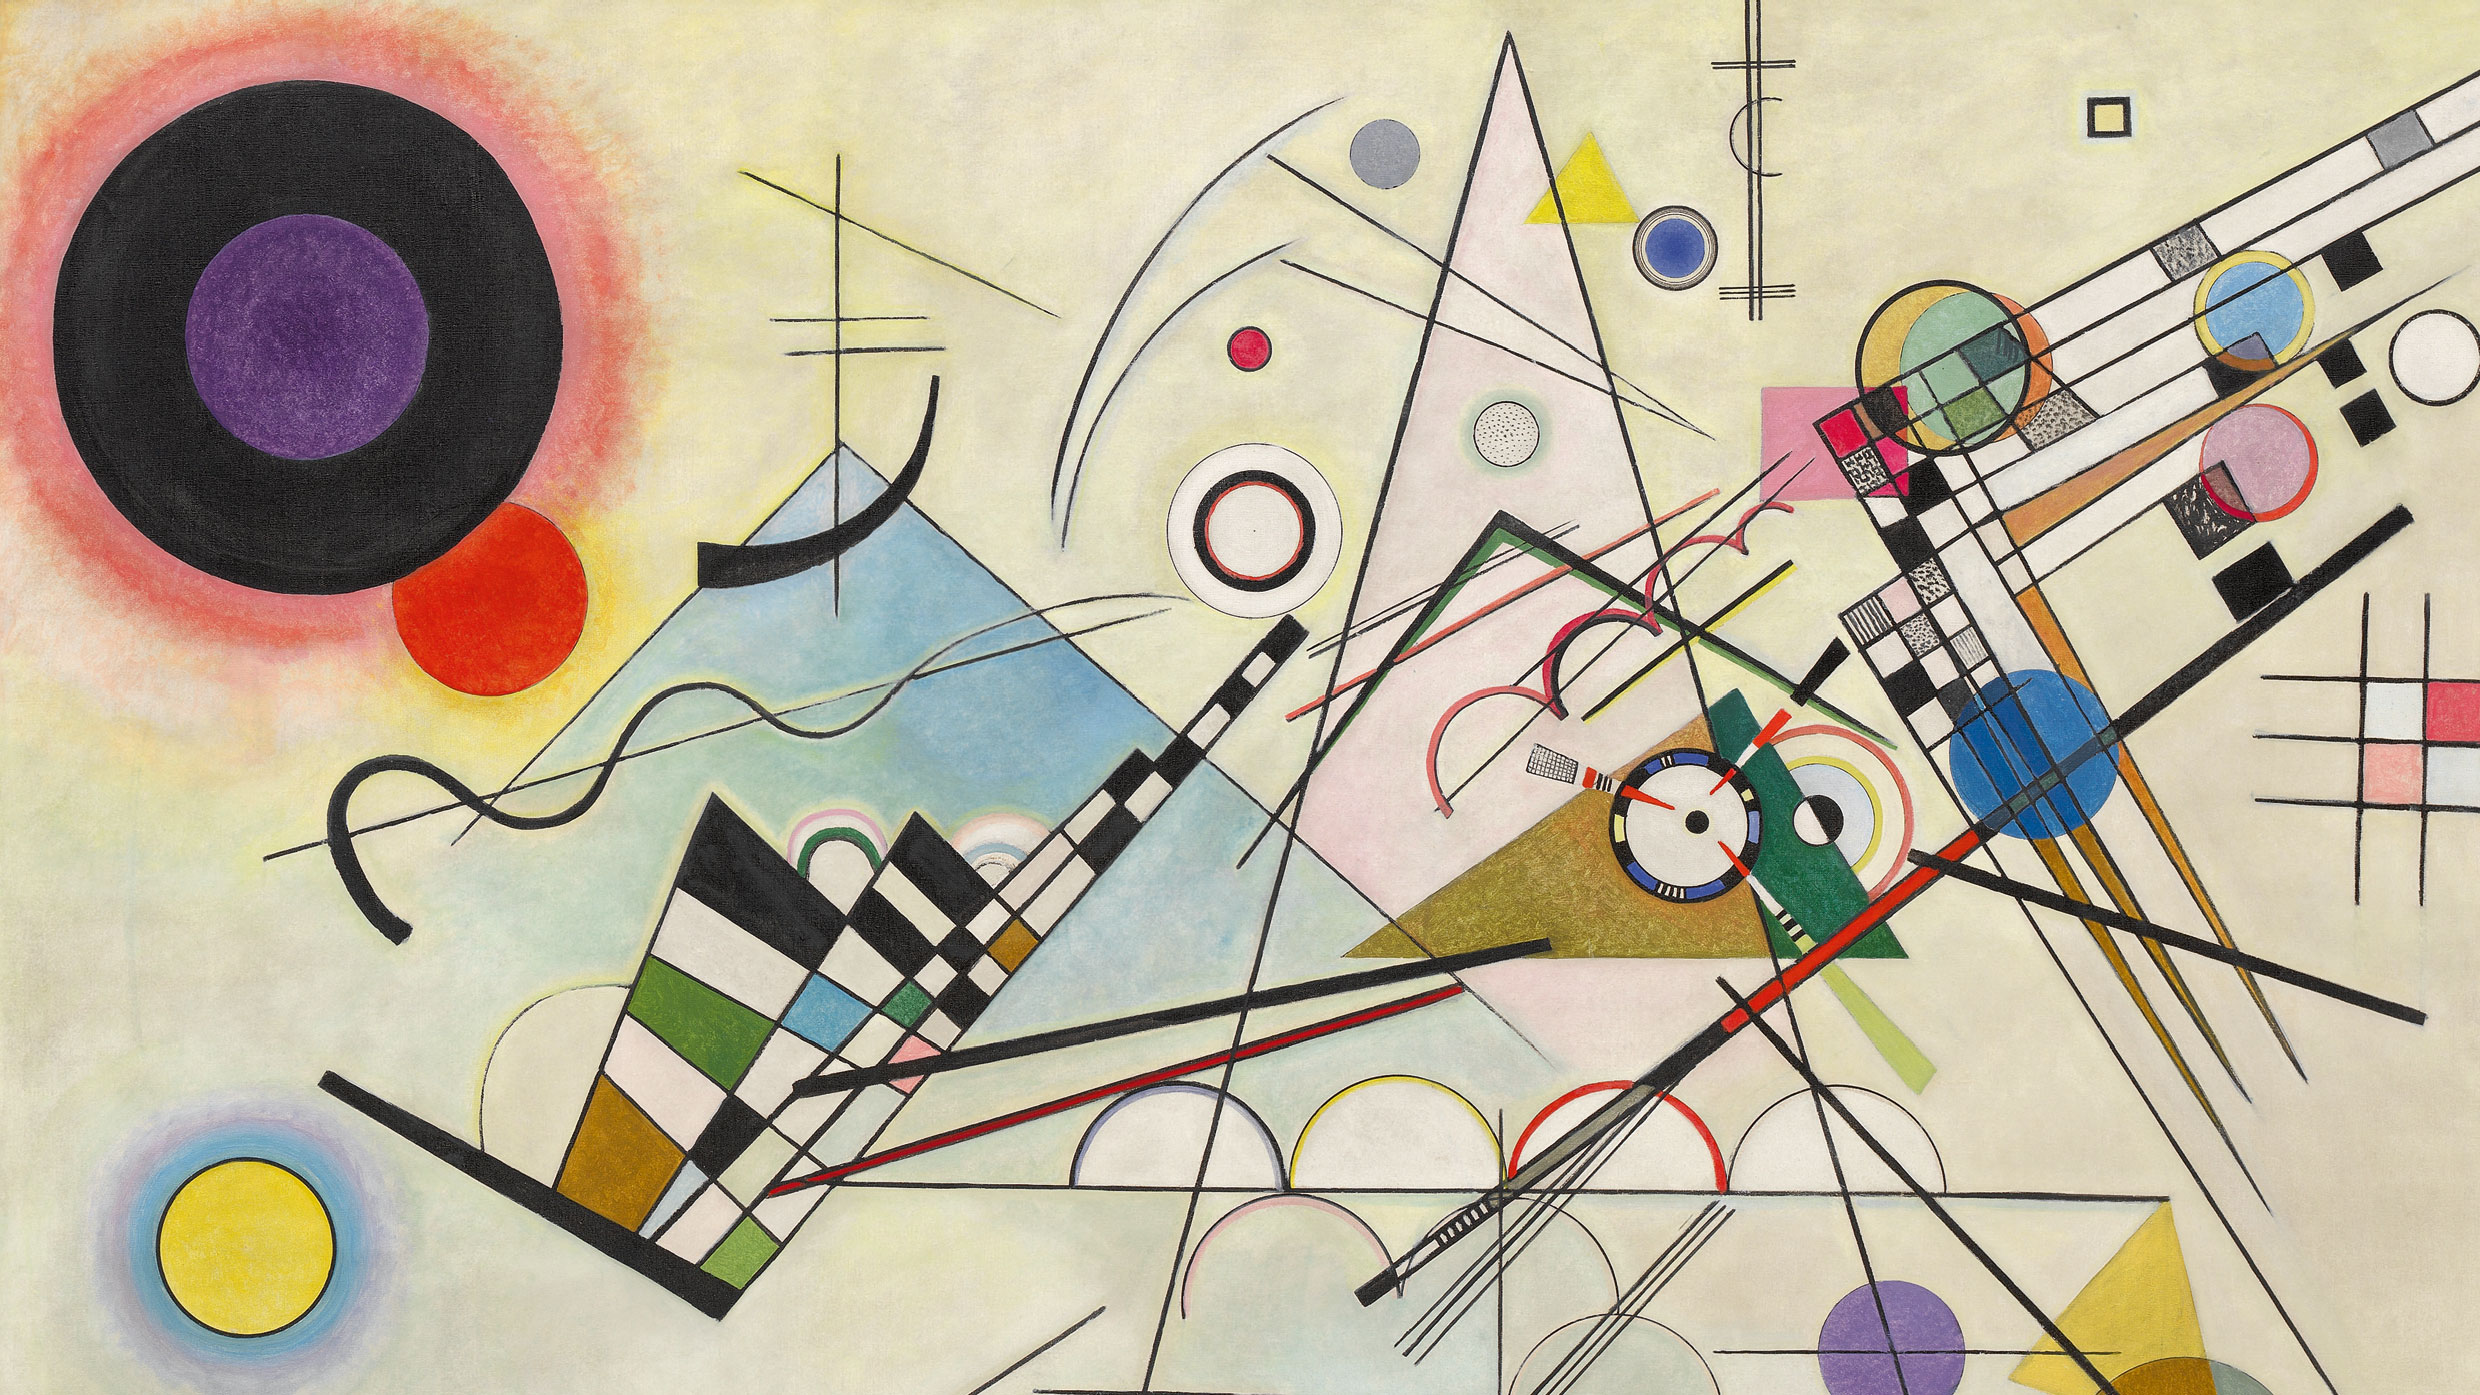 Detail: Vasily Kandinsky, Composition 8 (Komposition 8), July 1923. Oil on canvas, 55 1/8 x 79 1/8 inches (140 x 201 cm). Solomon R. Guggenheim Museum, New York, Solomon R. Guggenheim Founding Collection, Gift, Solomon R. Guggenheim 37.262. © 2009 Artists Rights Society (ARS), New York/ADAGP, Paris